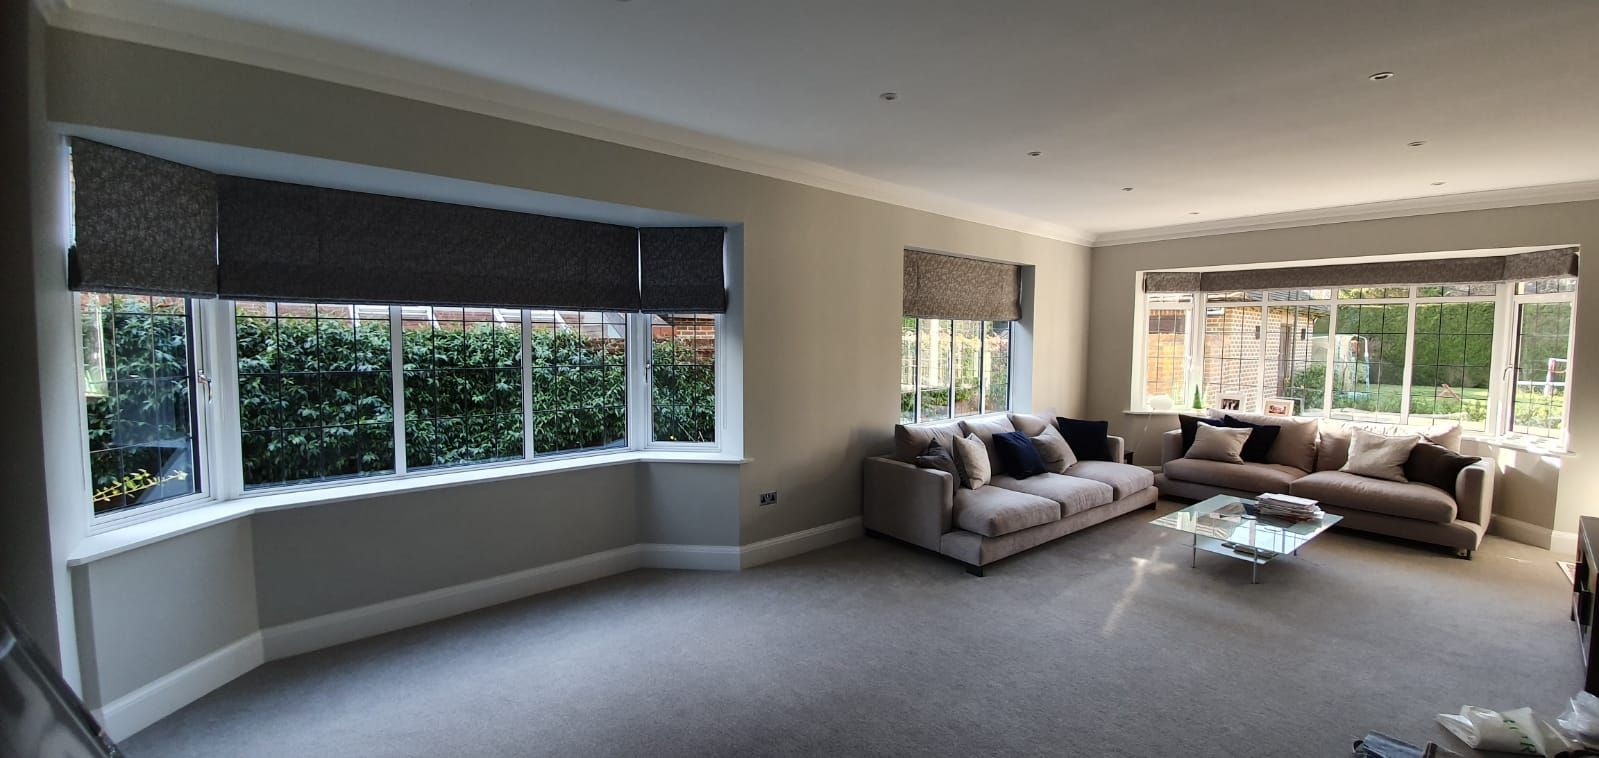 Roman blind sevenoaks bay window roman blinds dark fabric